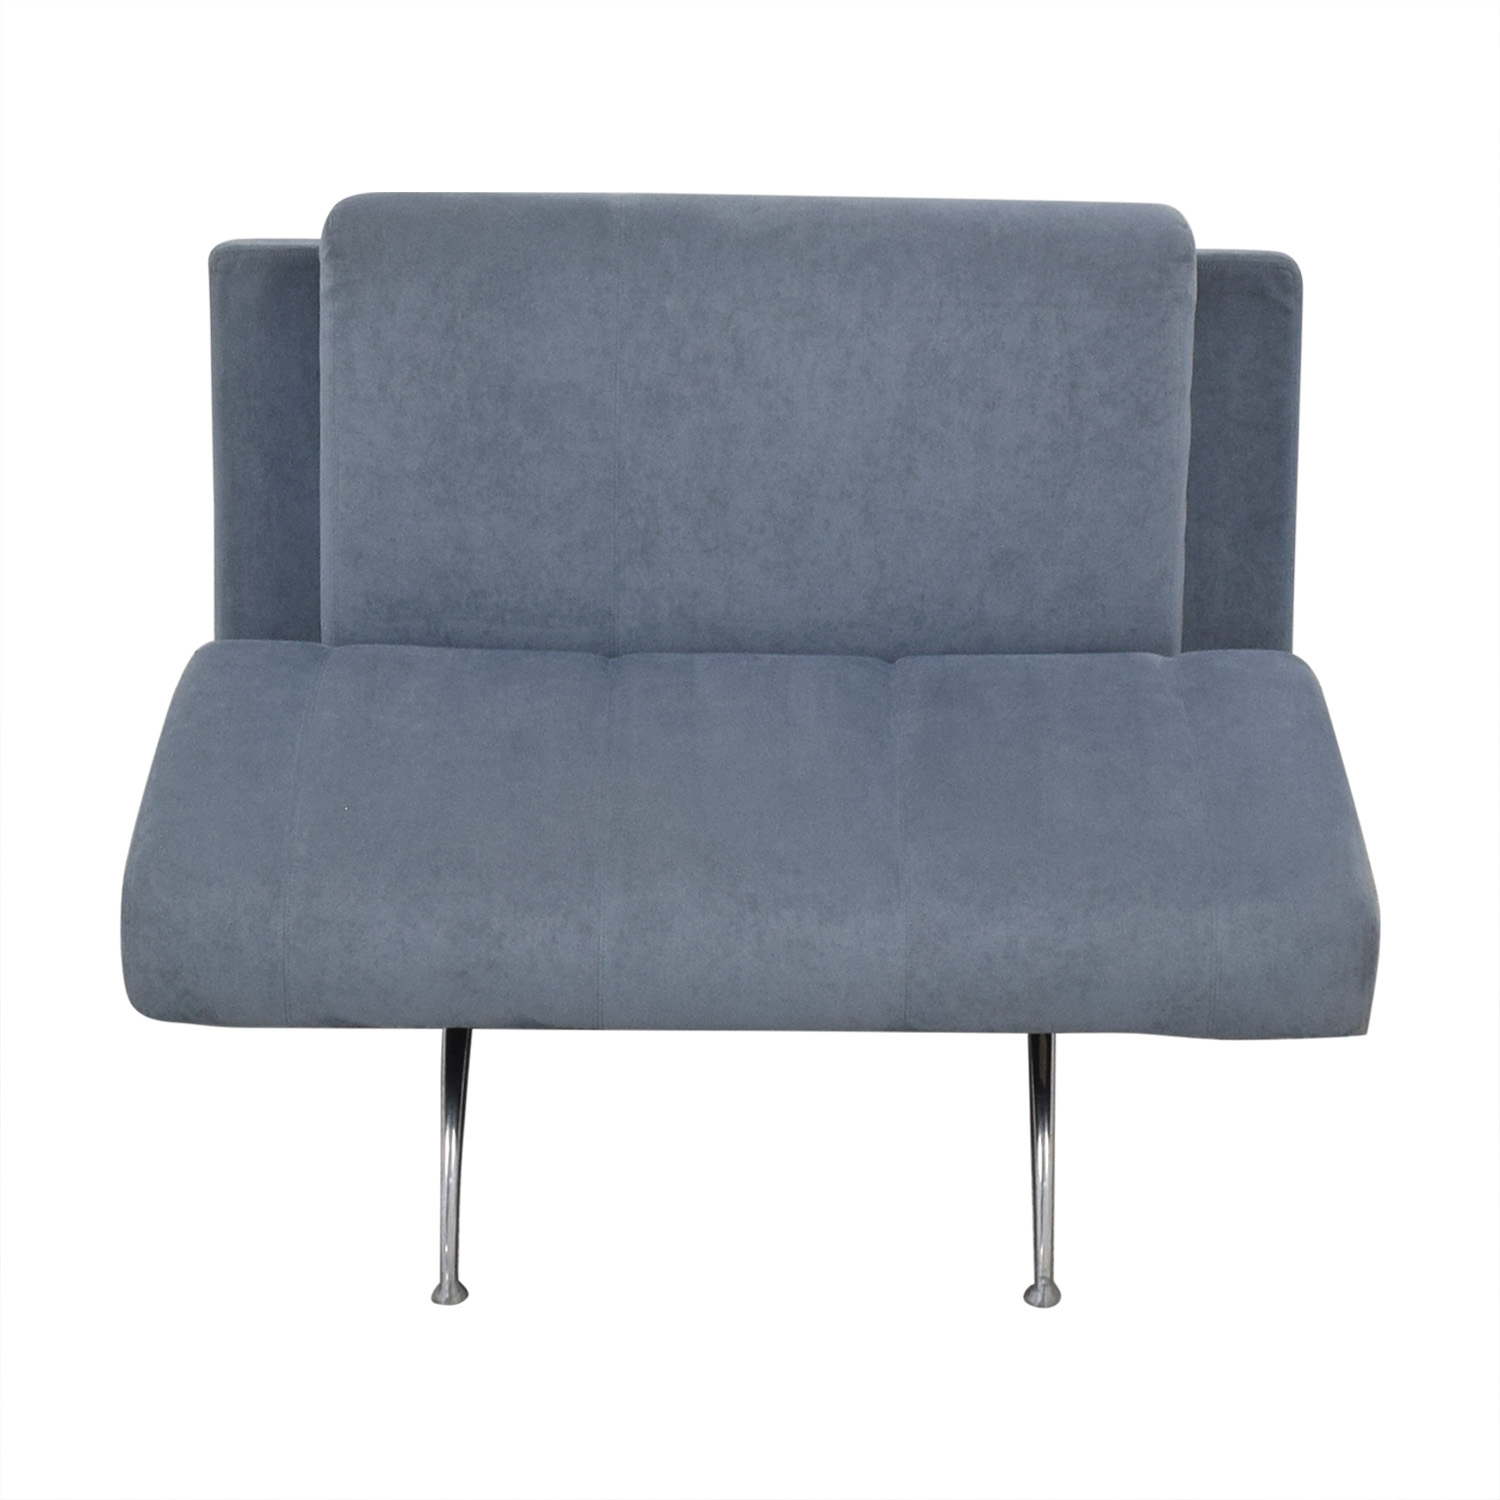 shop Moroso  Single Seat Lounge Chair Moroso Chairs